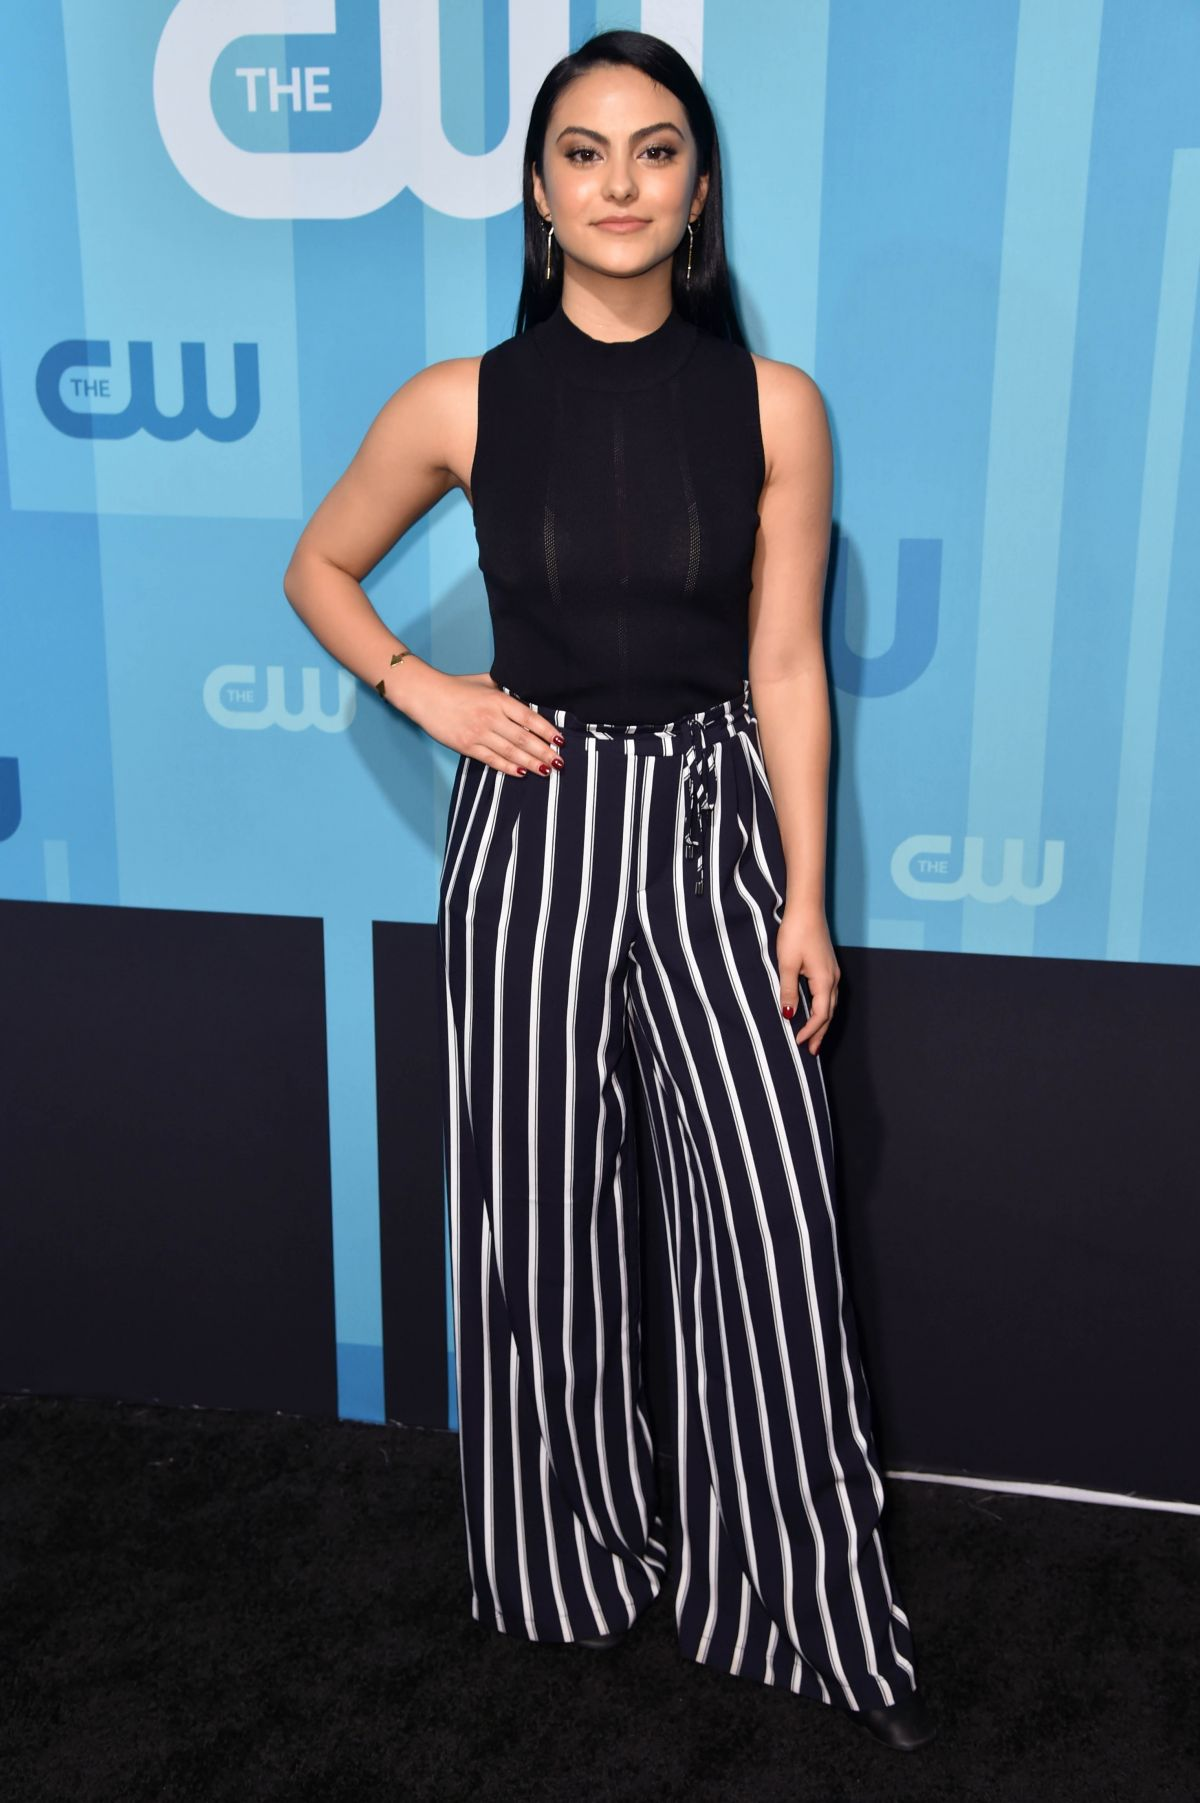 CAMILA MENDES at CW Network's Upfront in New York 05/18/2017